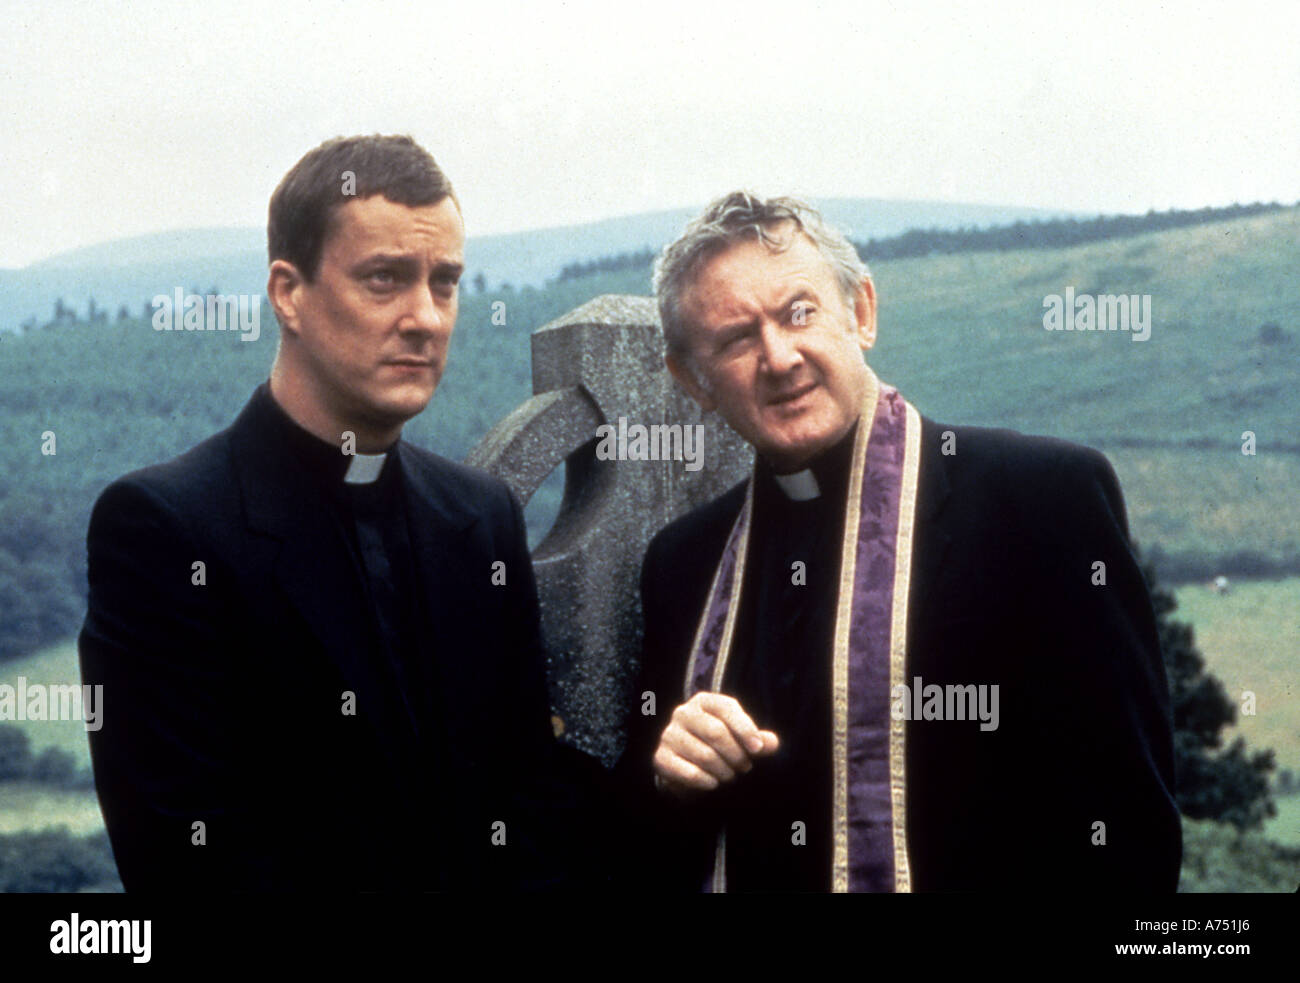 BALLYKISSANGEL UK TV series 1996-2001 with Stephen Tompkinson at left and Niall Tolbin - Stock Image